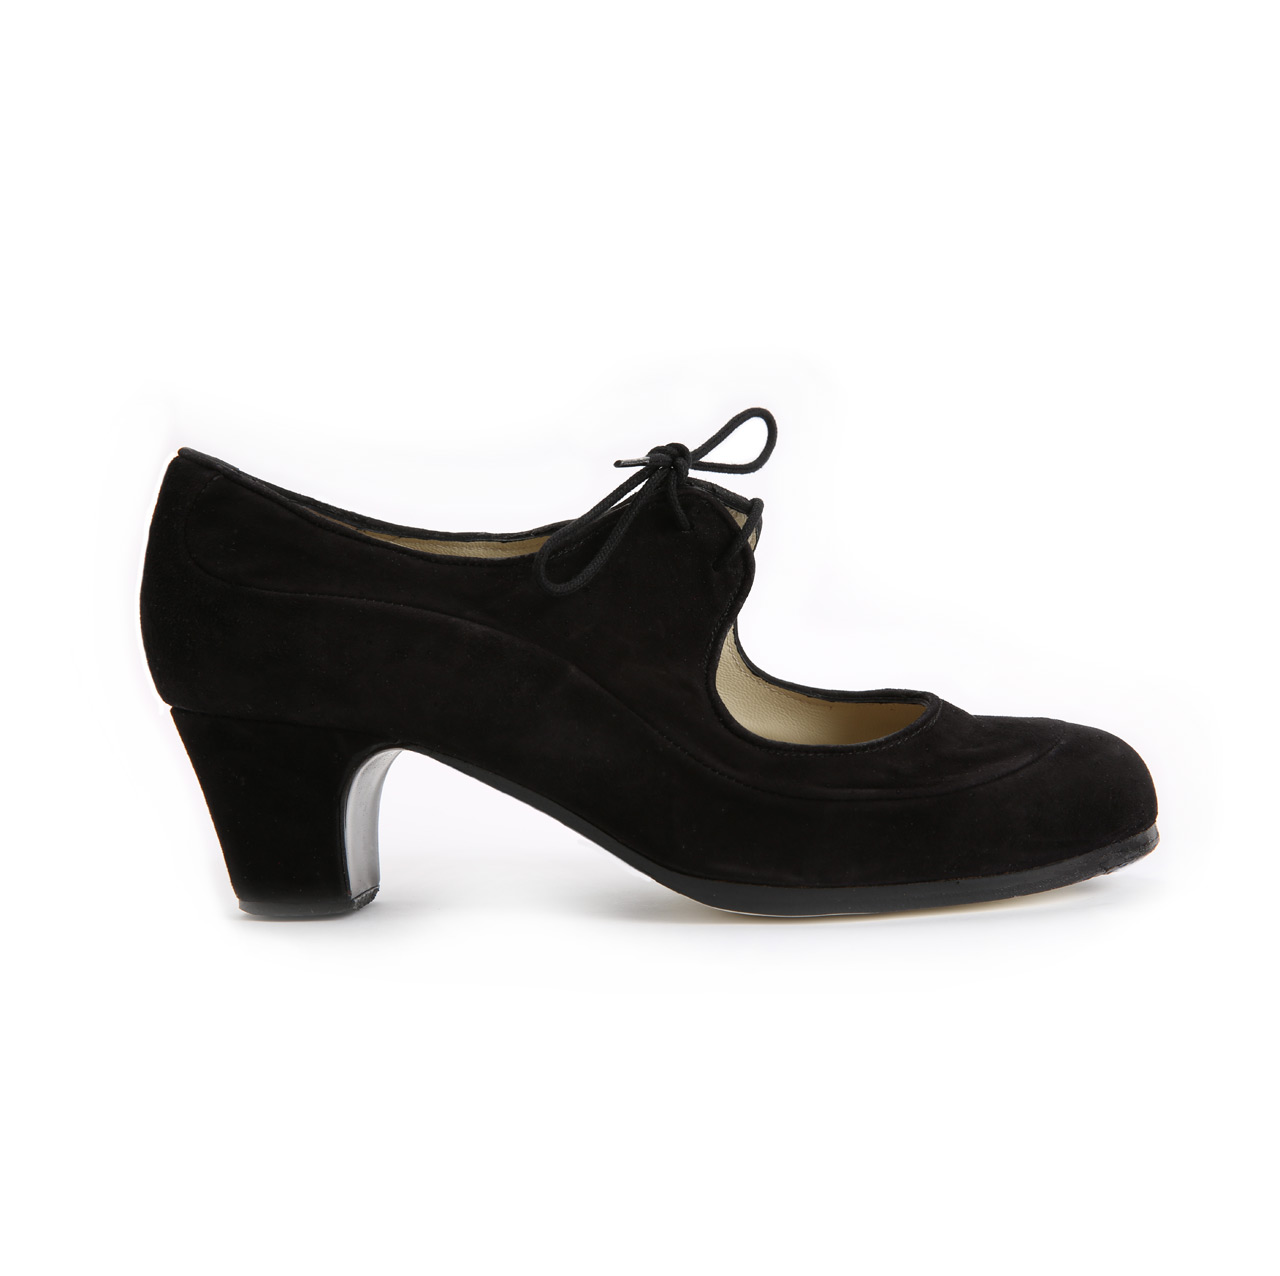 Flamenco dance Shoe Angelito Suède Black Ba